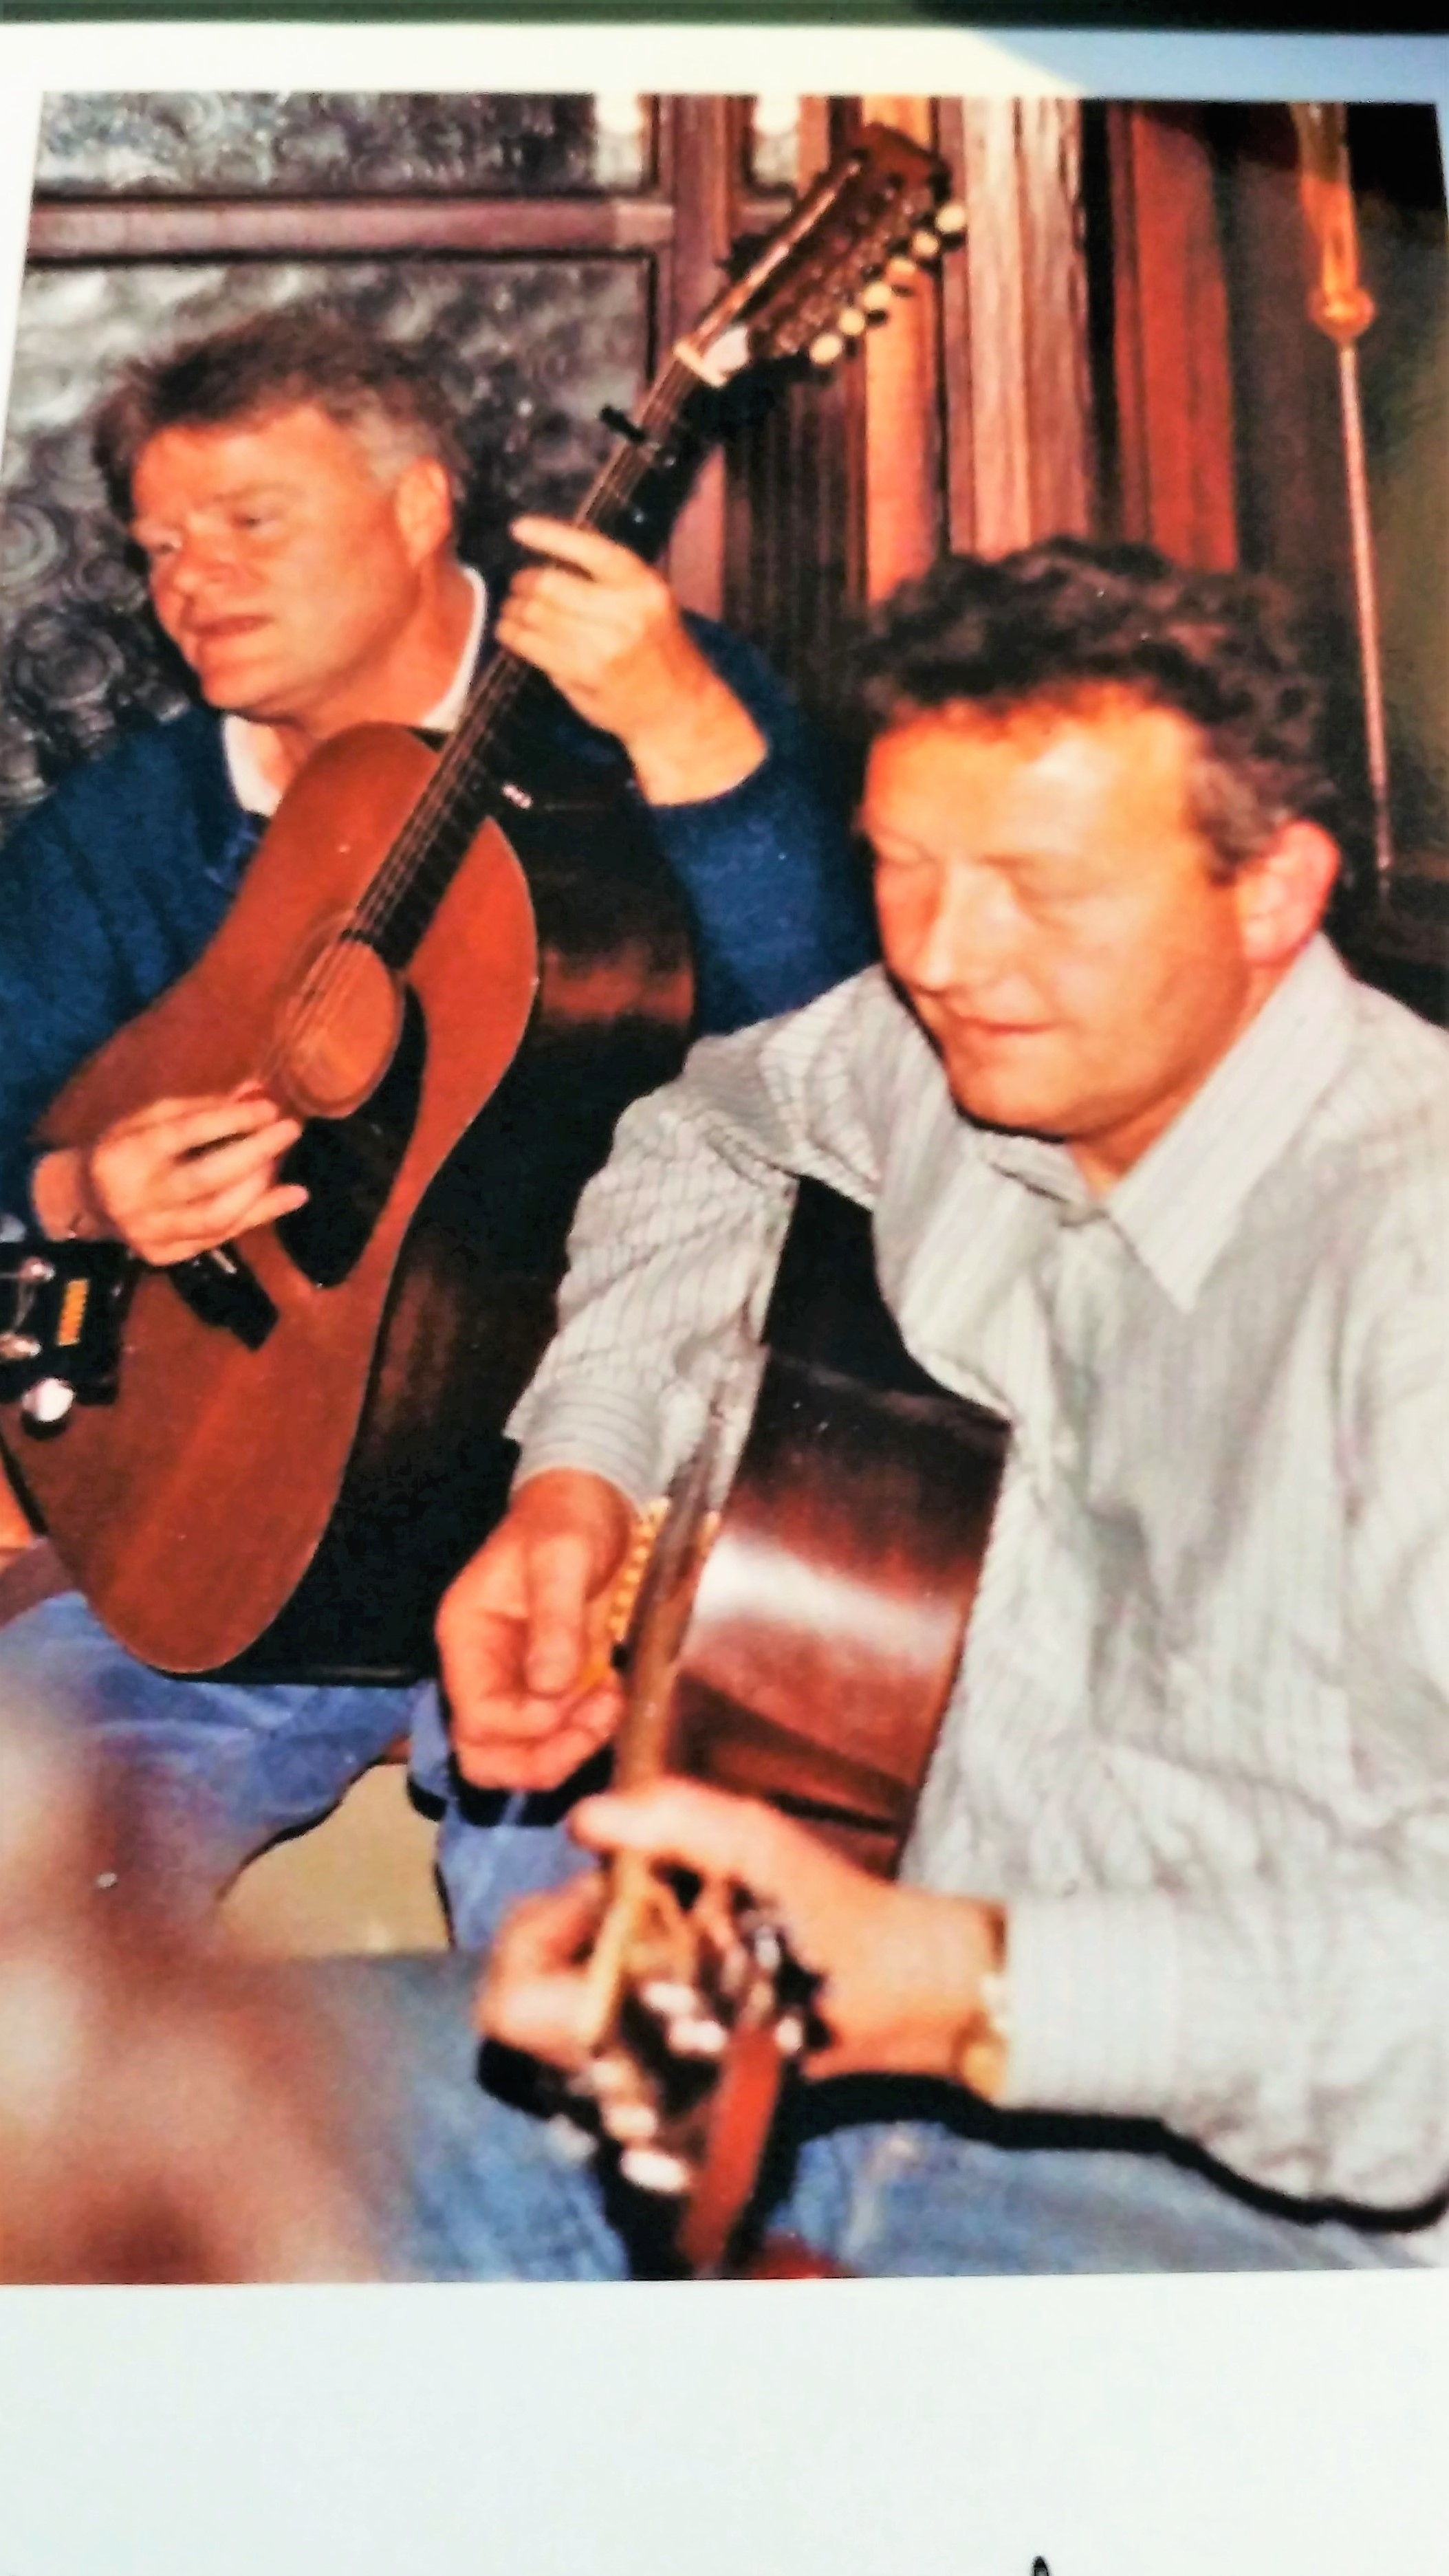 Thom playing with Donal McLynn at Mclynn's pub, circa 1989.